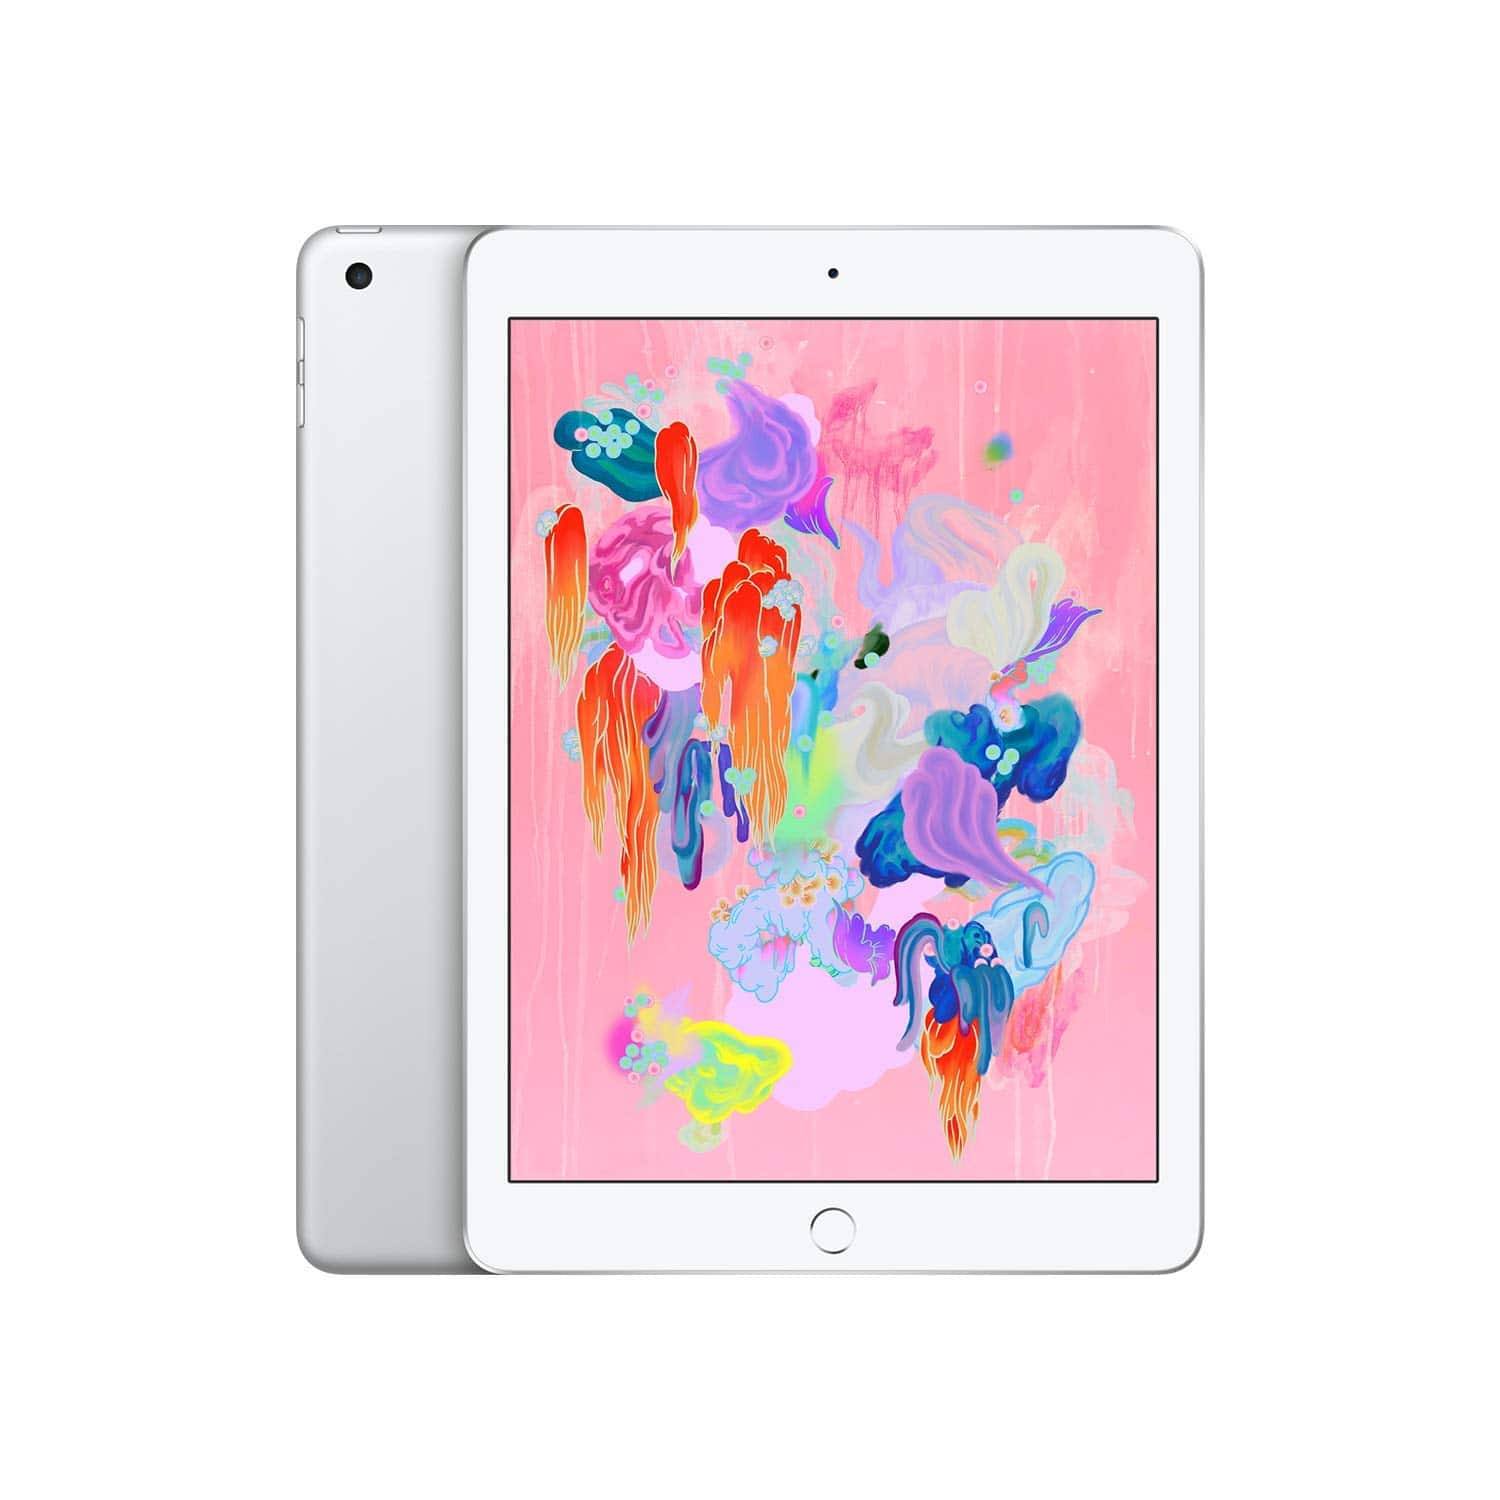 Apple Ipad Latest model -32 GB - 249$ - Amazon $249